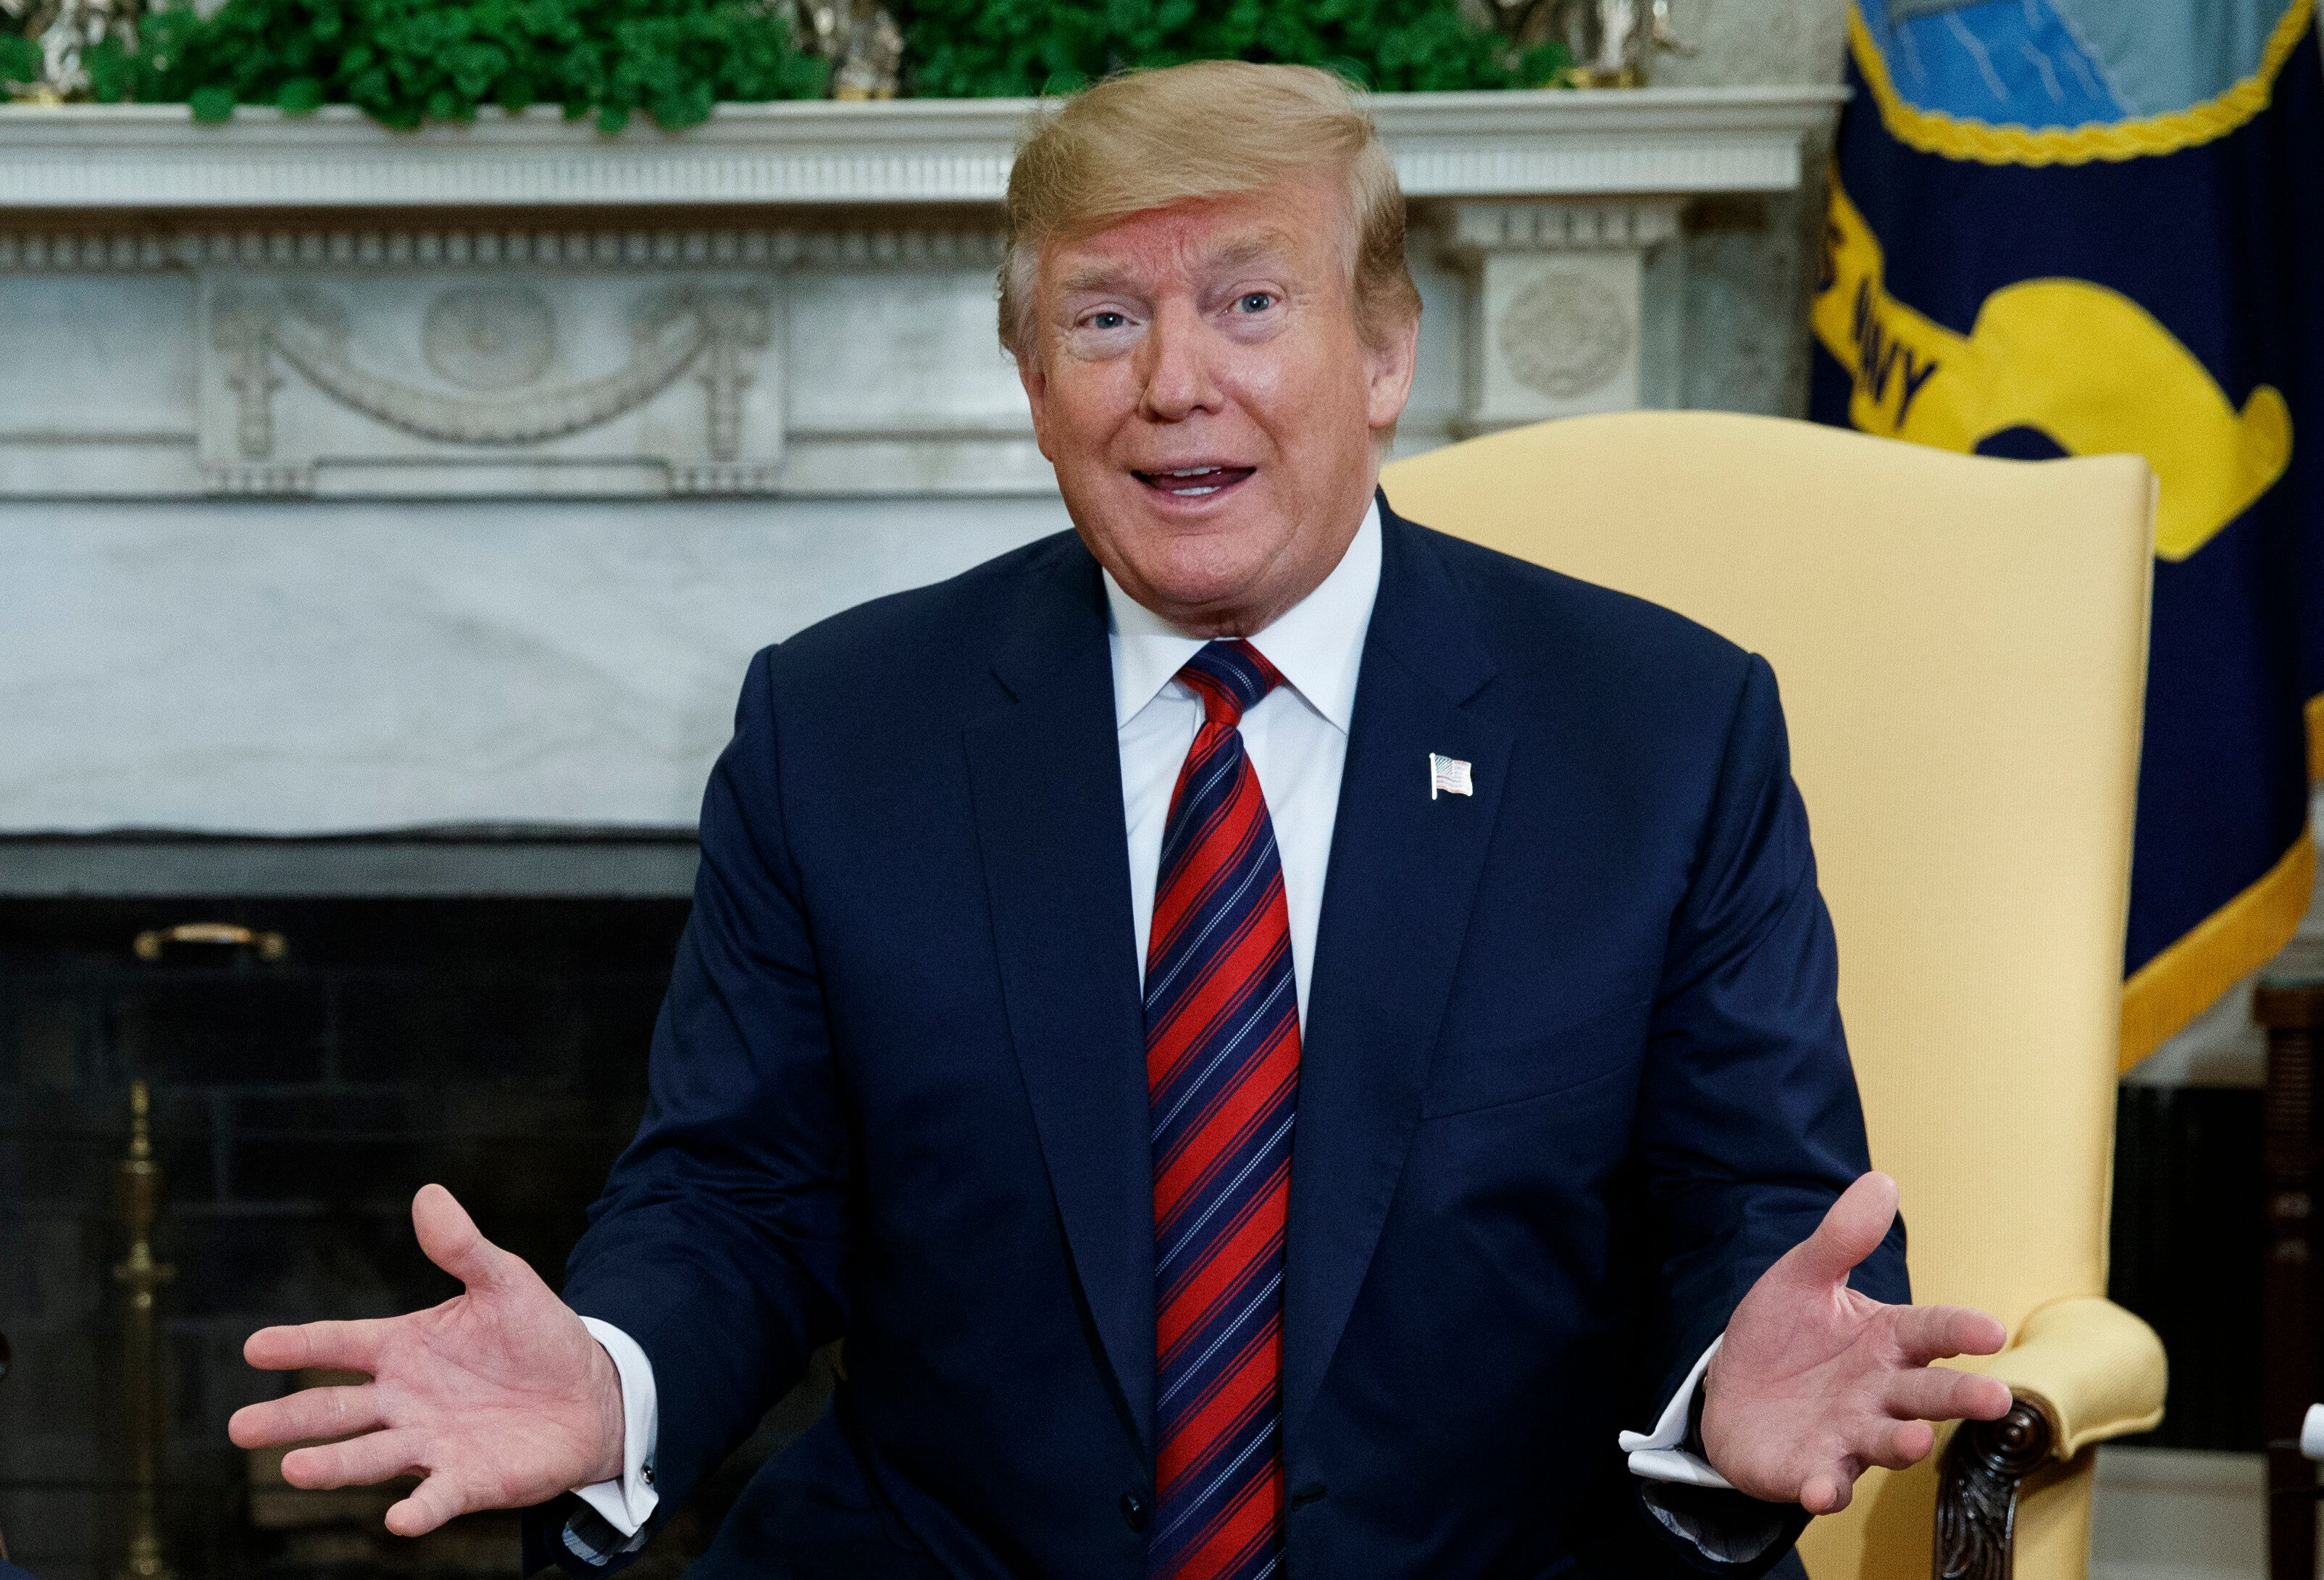 In this April 11, 2019, photo, President Donald Trump speaks during a meeting with South Korean President Moon Jae-in in the Oval Office of the White House in Washington. (AP Photo/Evan Vucci)